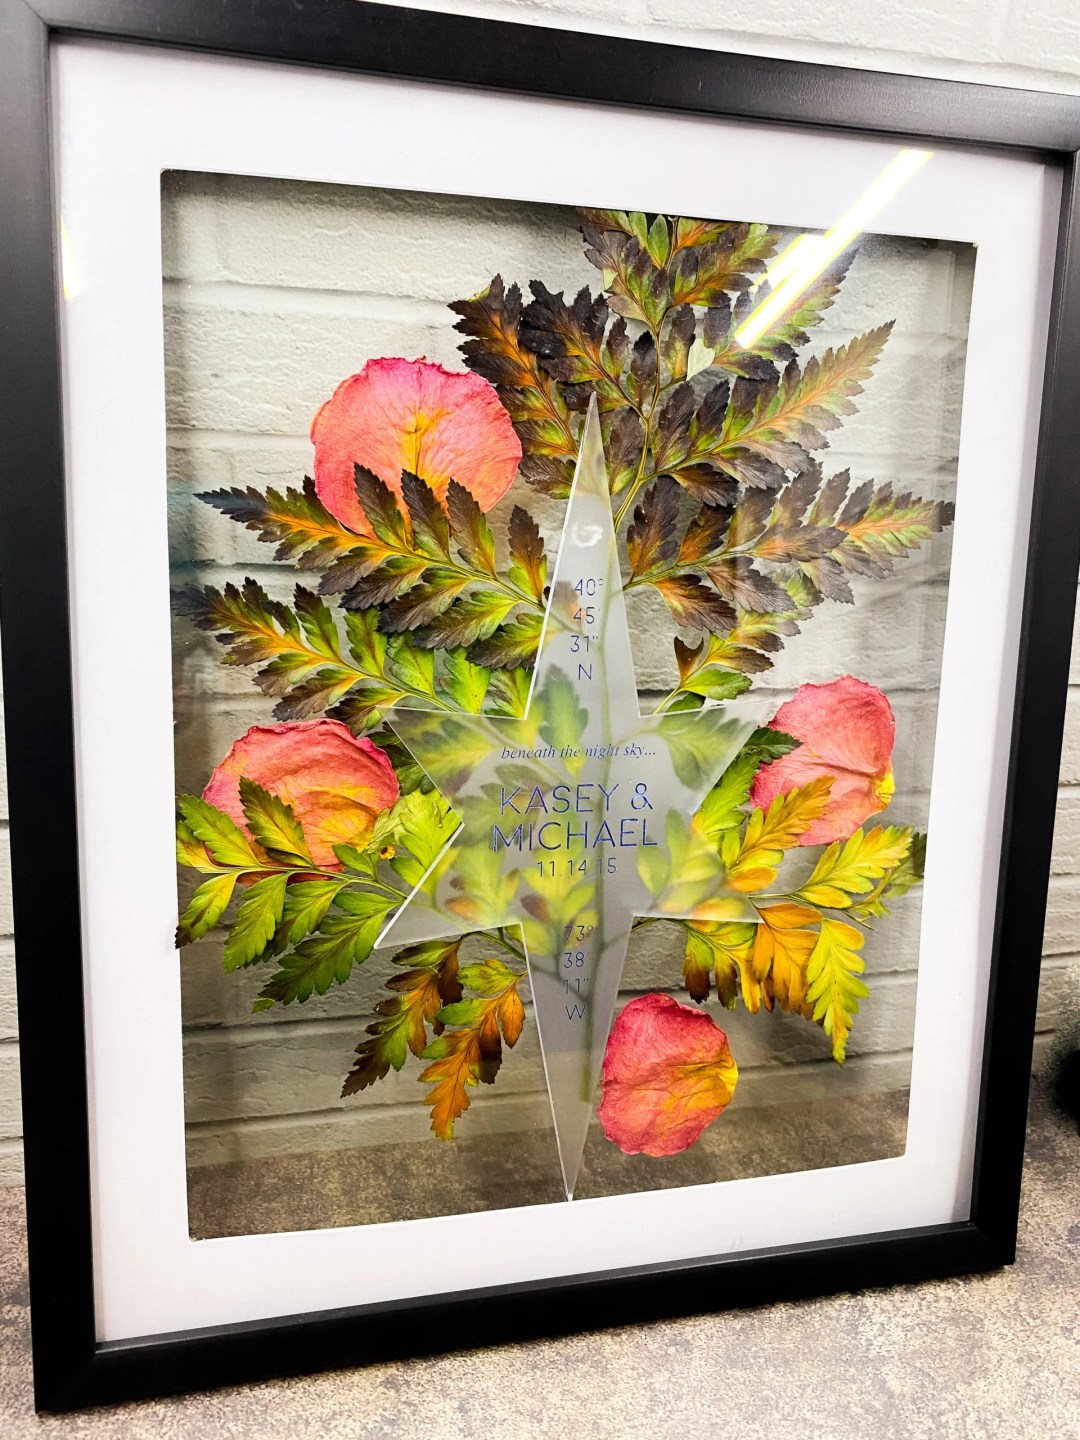 pressed rose petals and fern surround star shape art piece in home decor